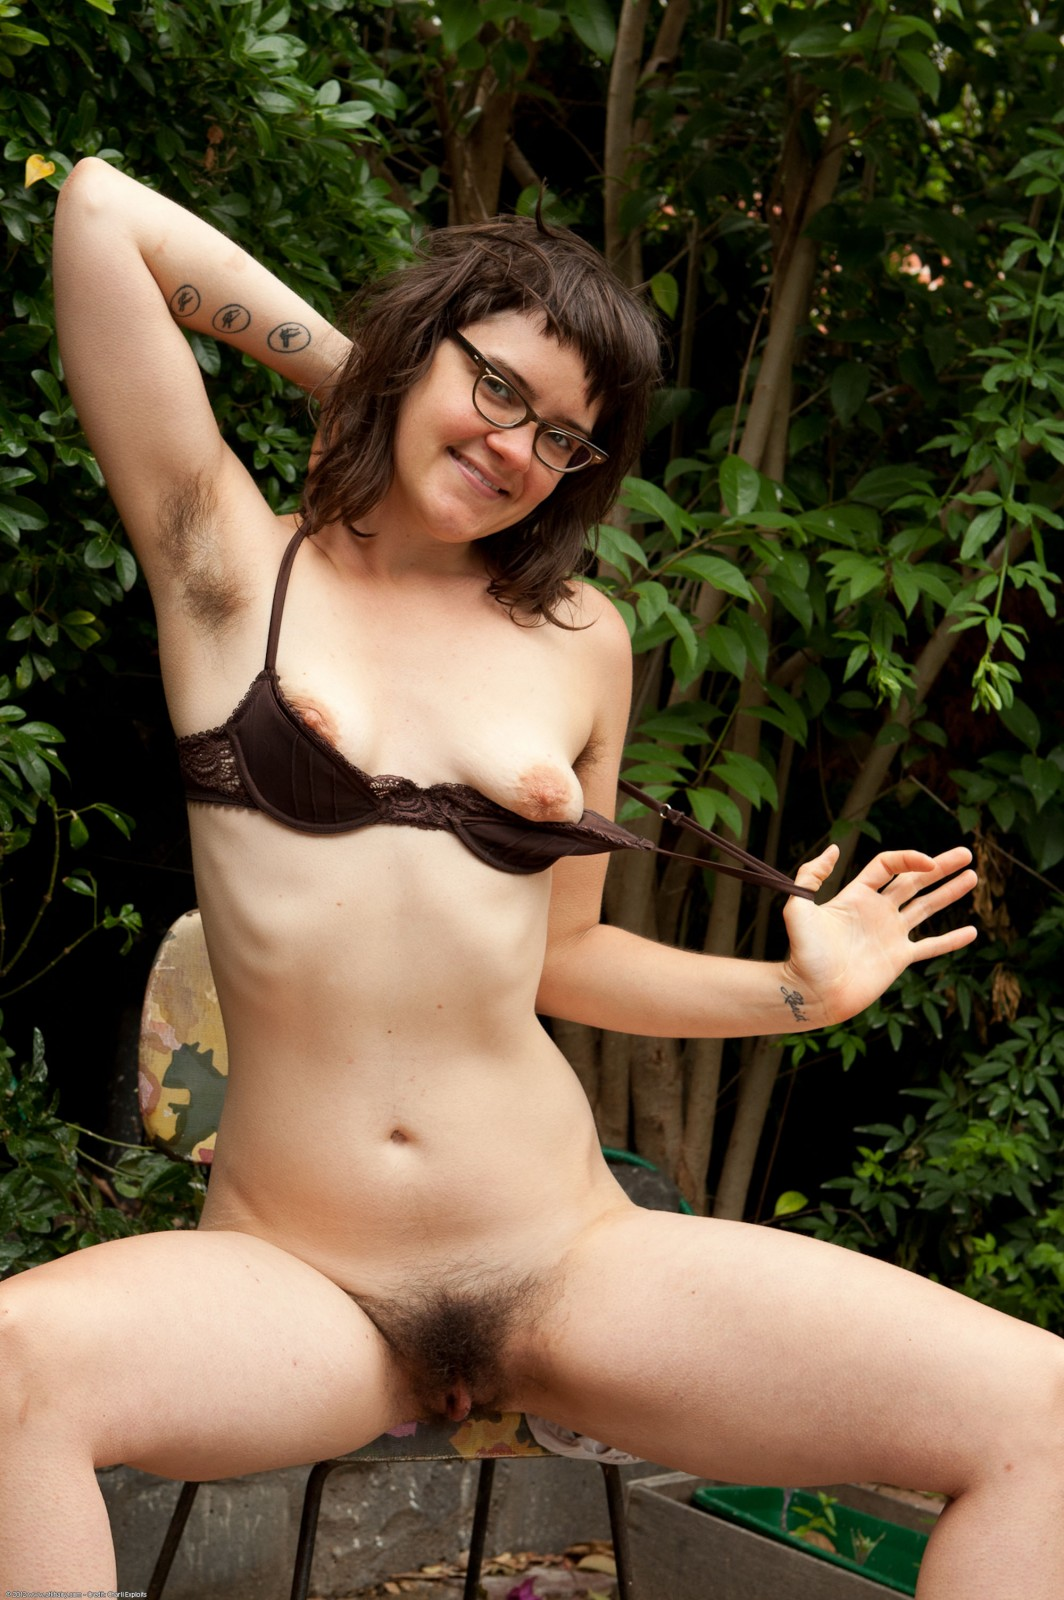 CUTE CHUBBY TEEN GIRL NUDE